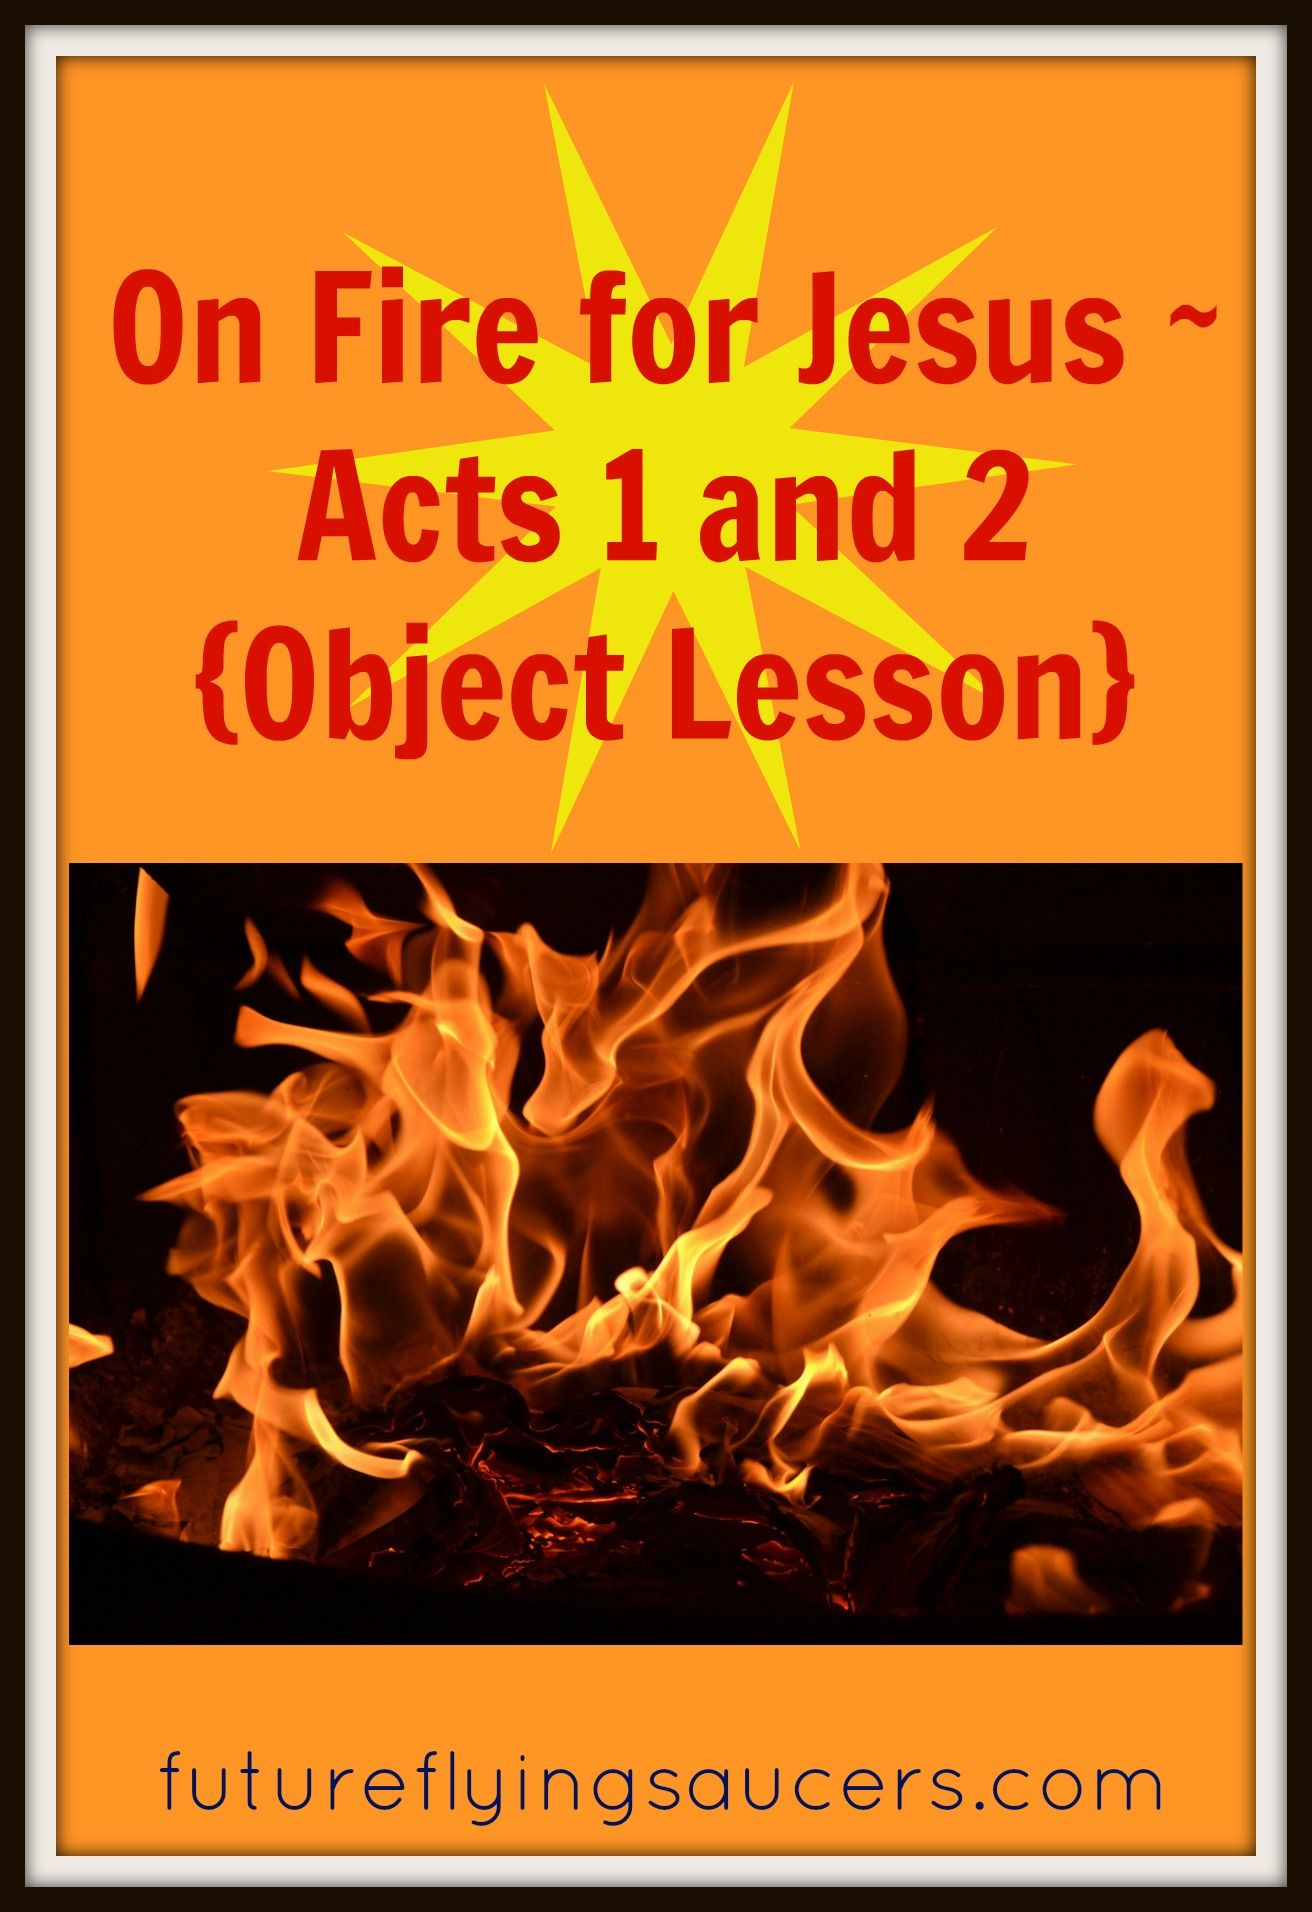 on fire for jesus acts 1 and 2 object lesson object lessons